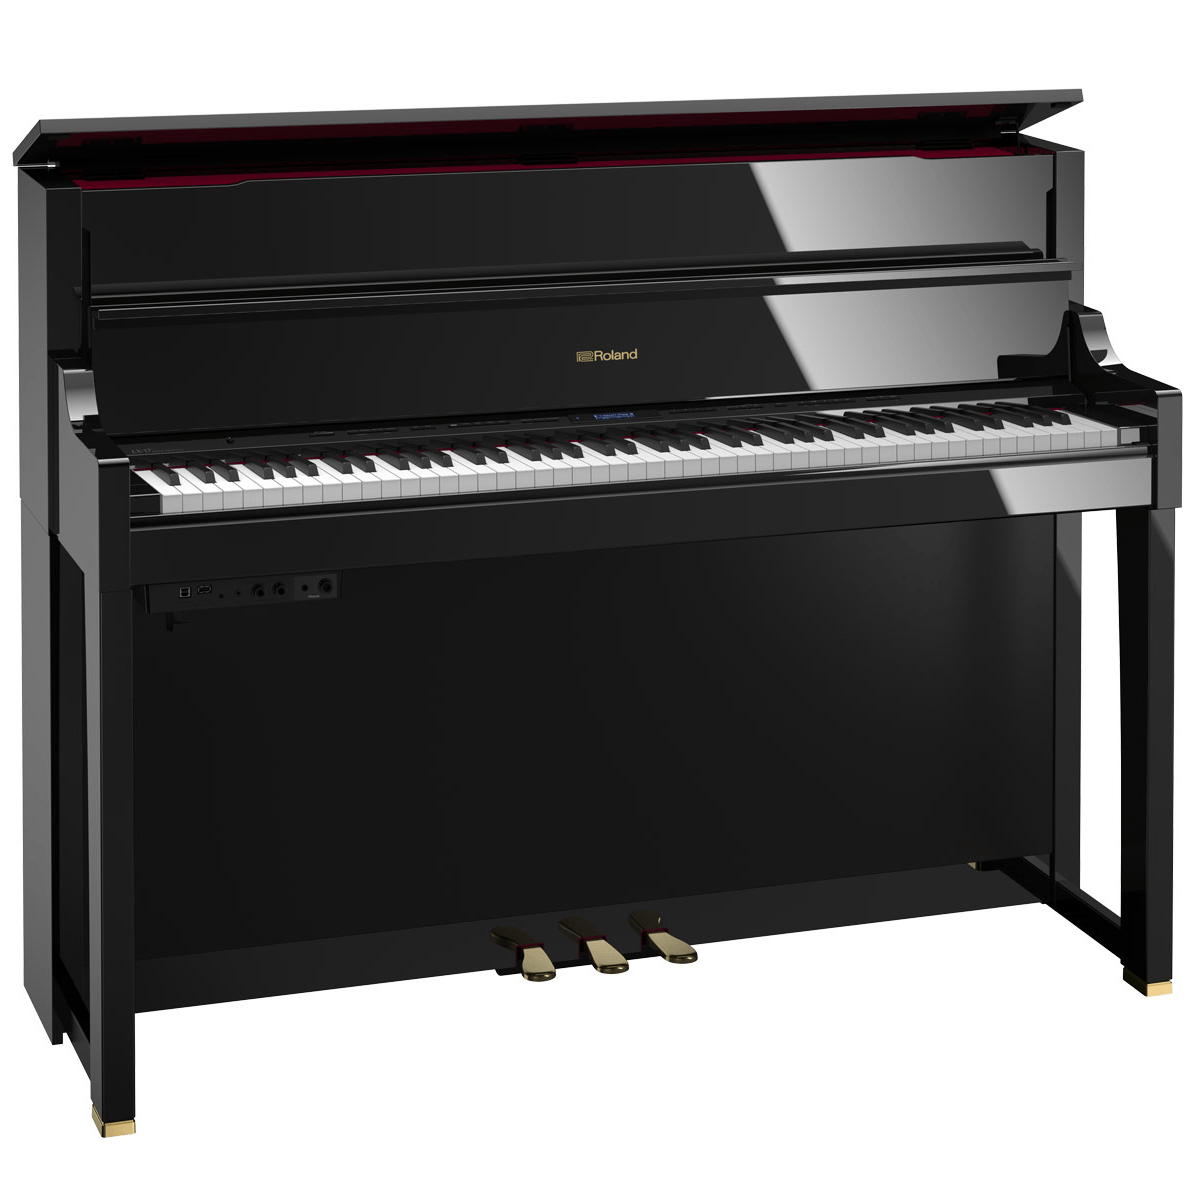 Piano Điện Roland LX-17